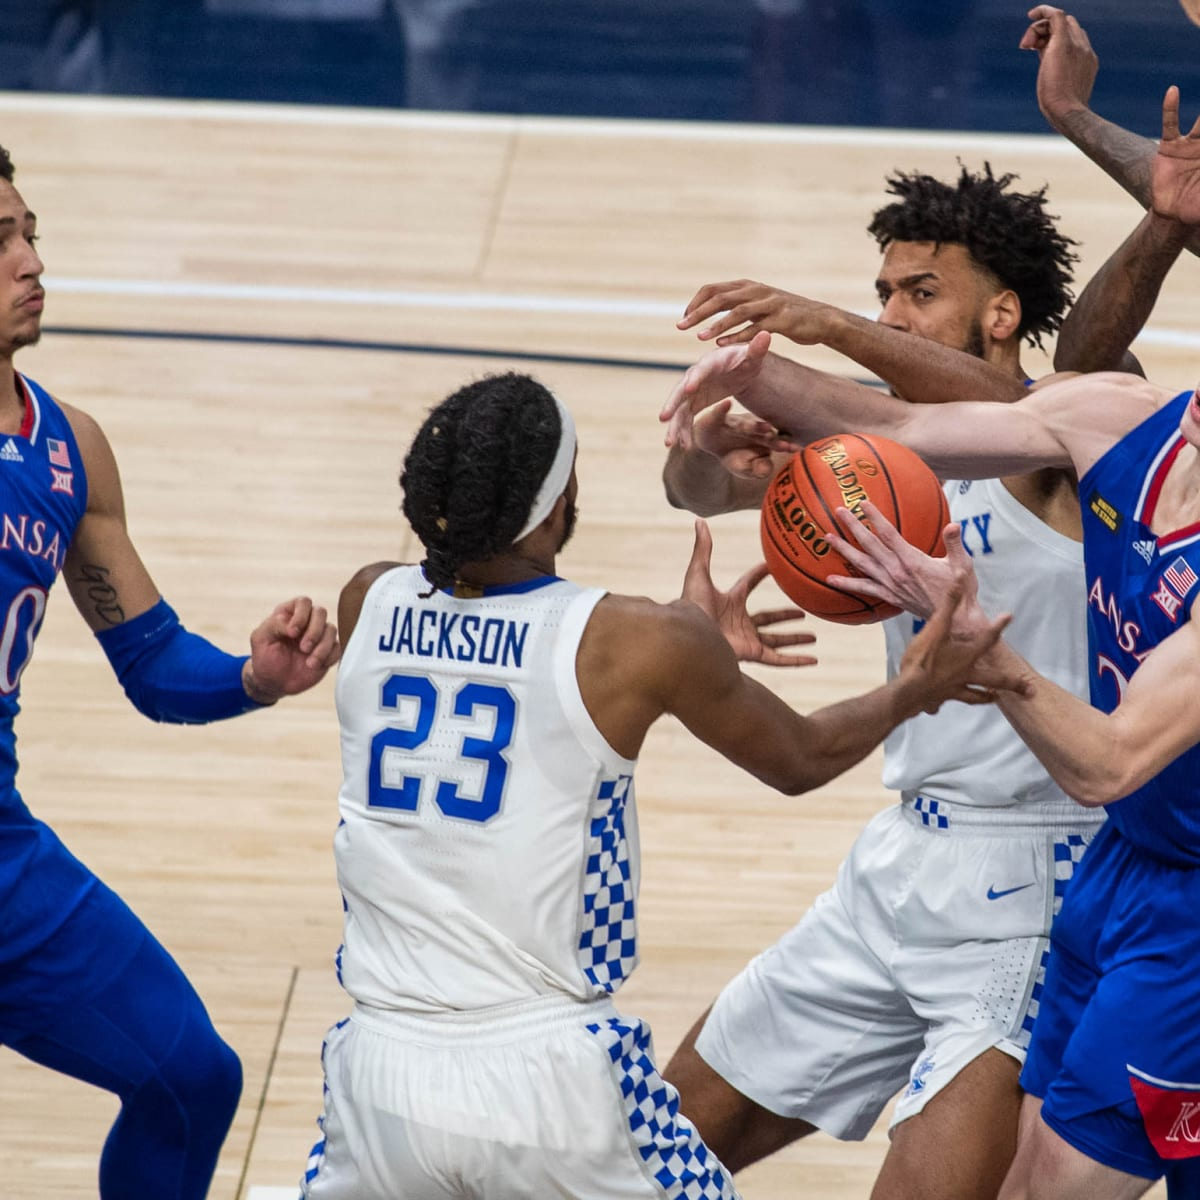 Kansas' ugly win over Kentucky reflect college hoops' unsettling start -  Sports Illustrated